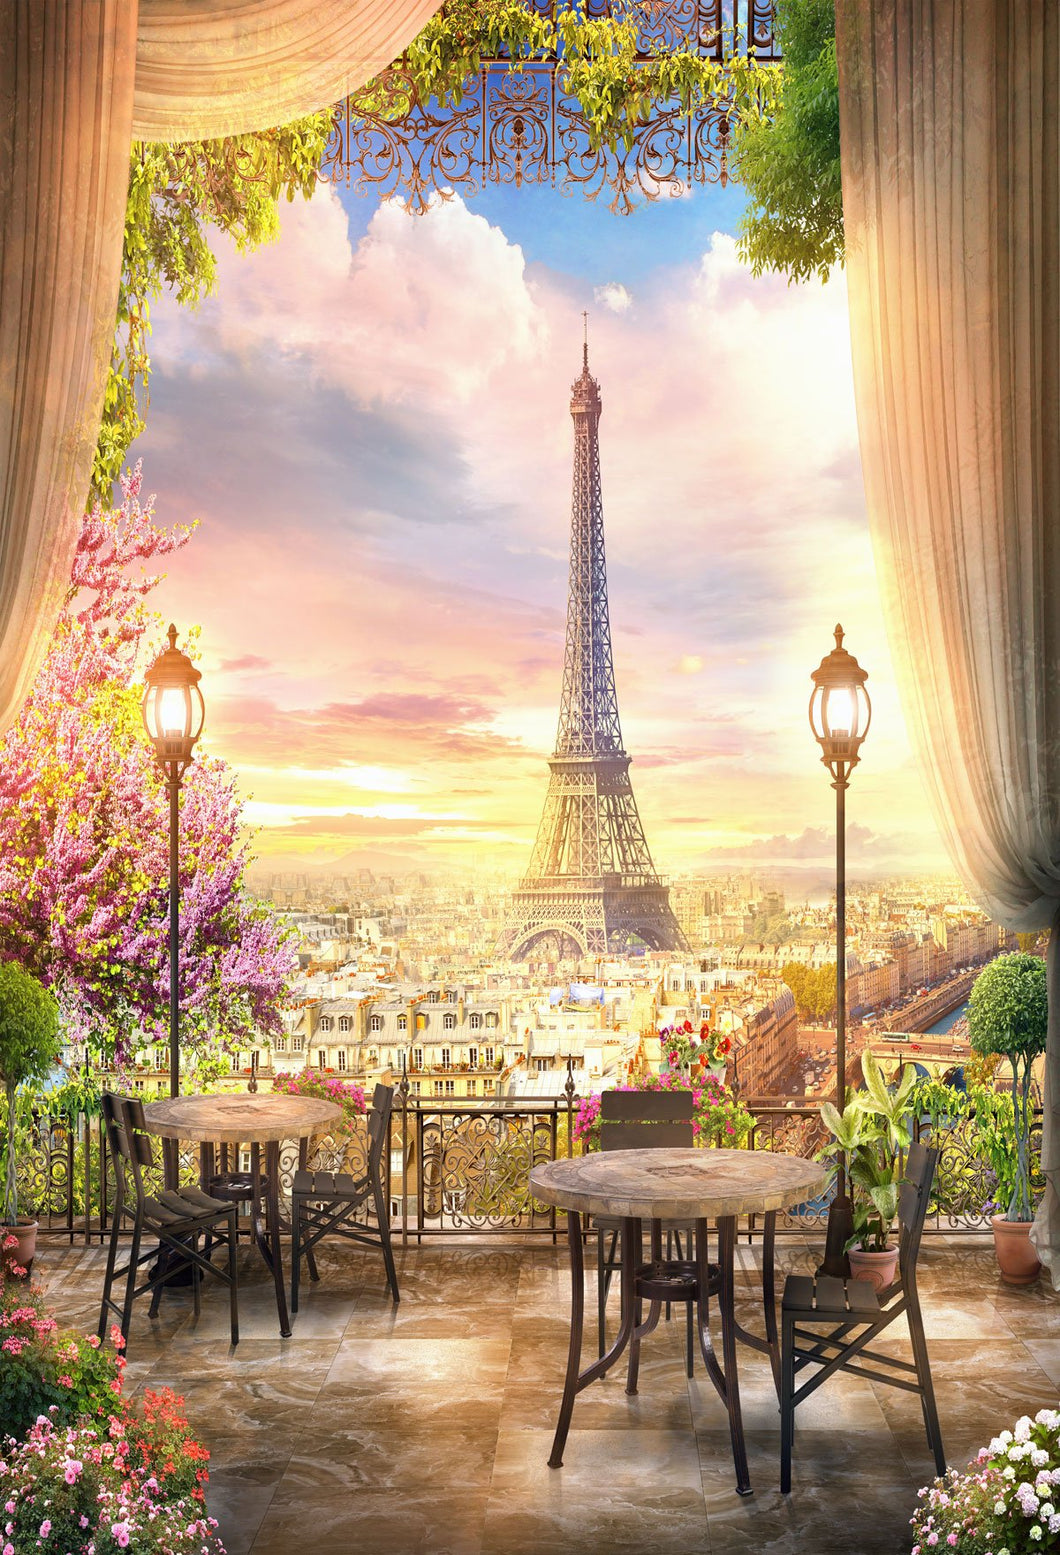 Kate Eiffel Tower Travel Sunset Backdrop for Photography - Kate backdrops UK